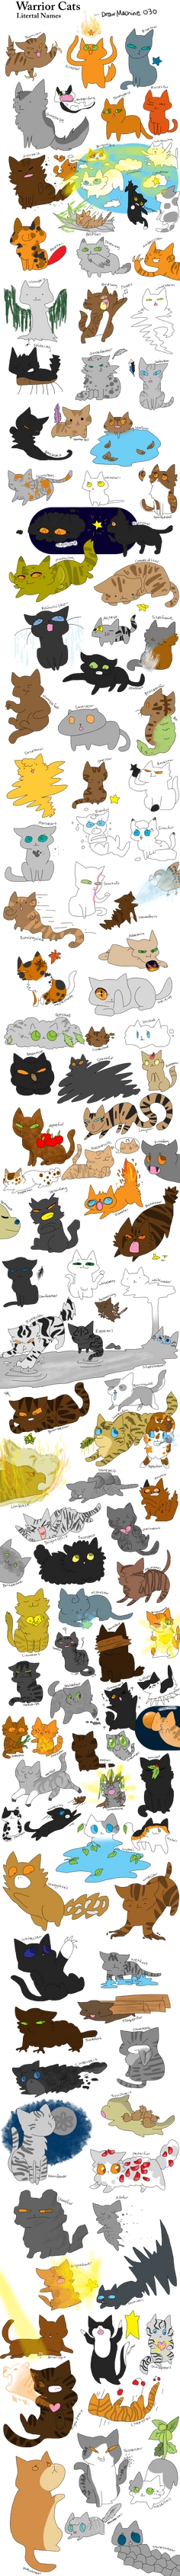 Warrior Cats (literal names) by DrawMachine030